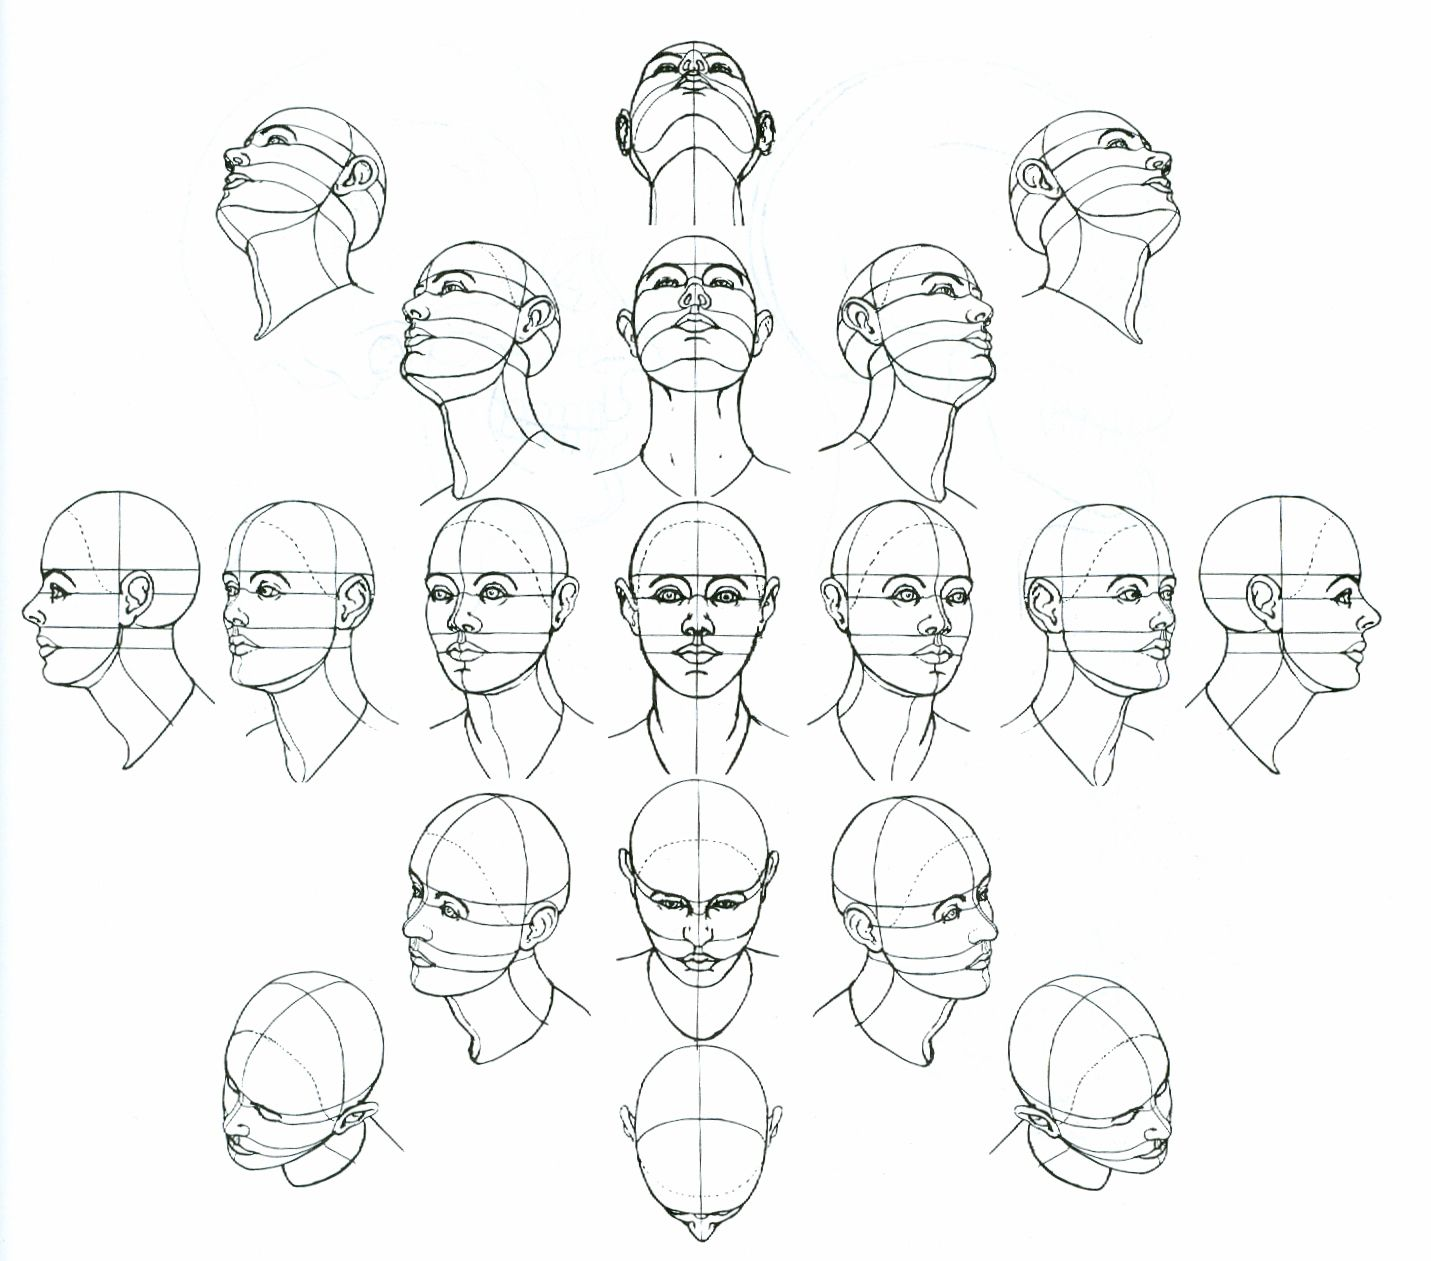 Anatomical Drawings Of Heads Patrick S Free Art Course Lesson 04 Anatomy Exercise H Face Drawing Anatomy Sketches Step By Step Drawing